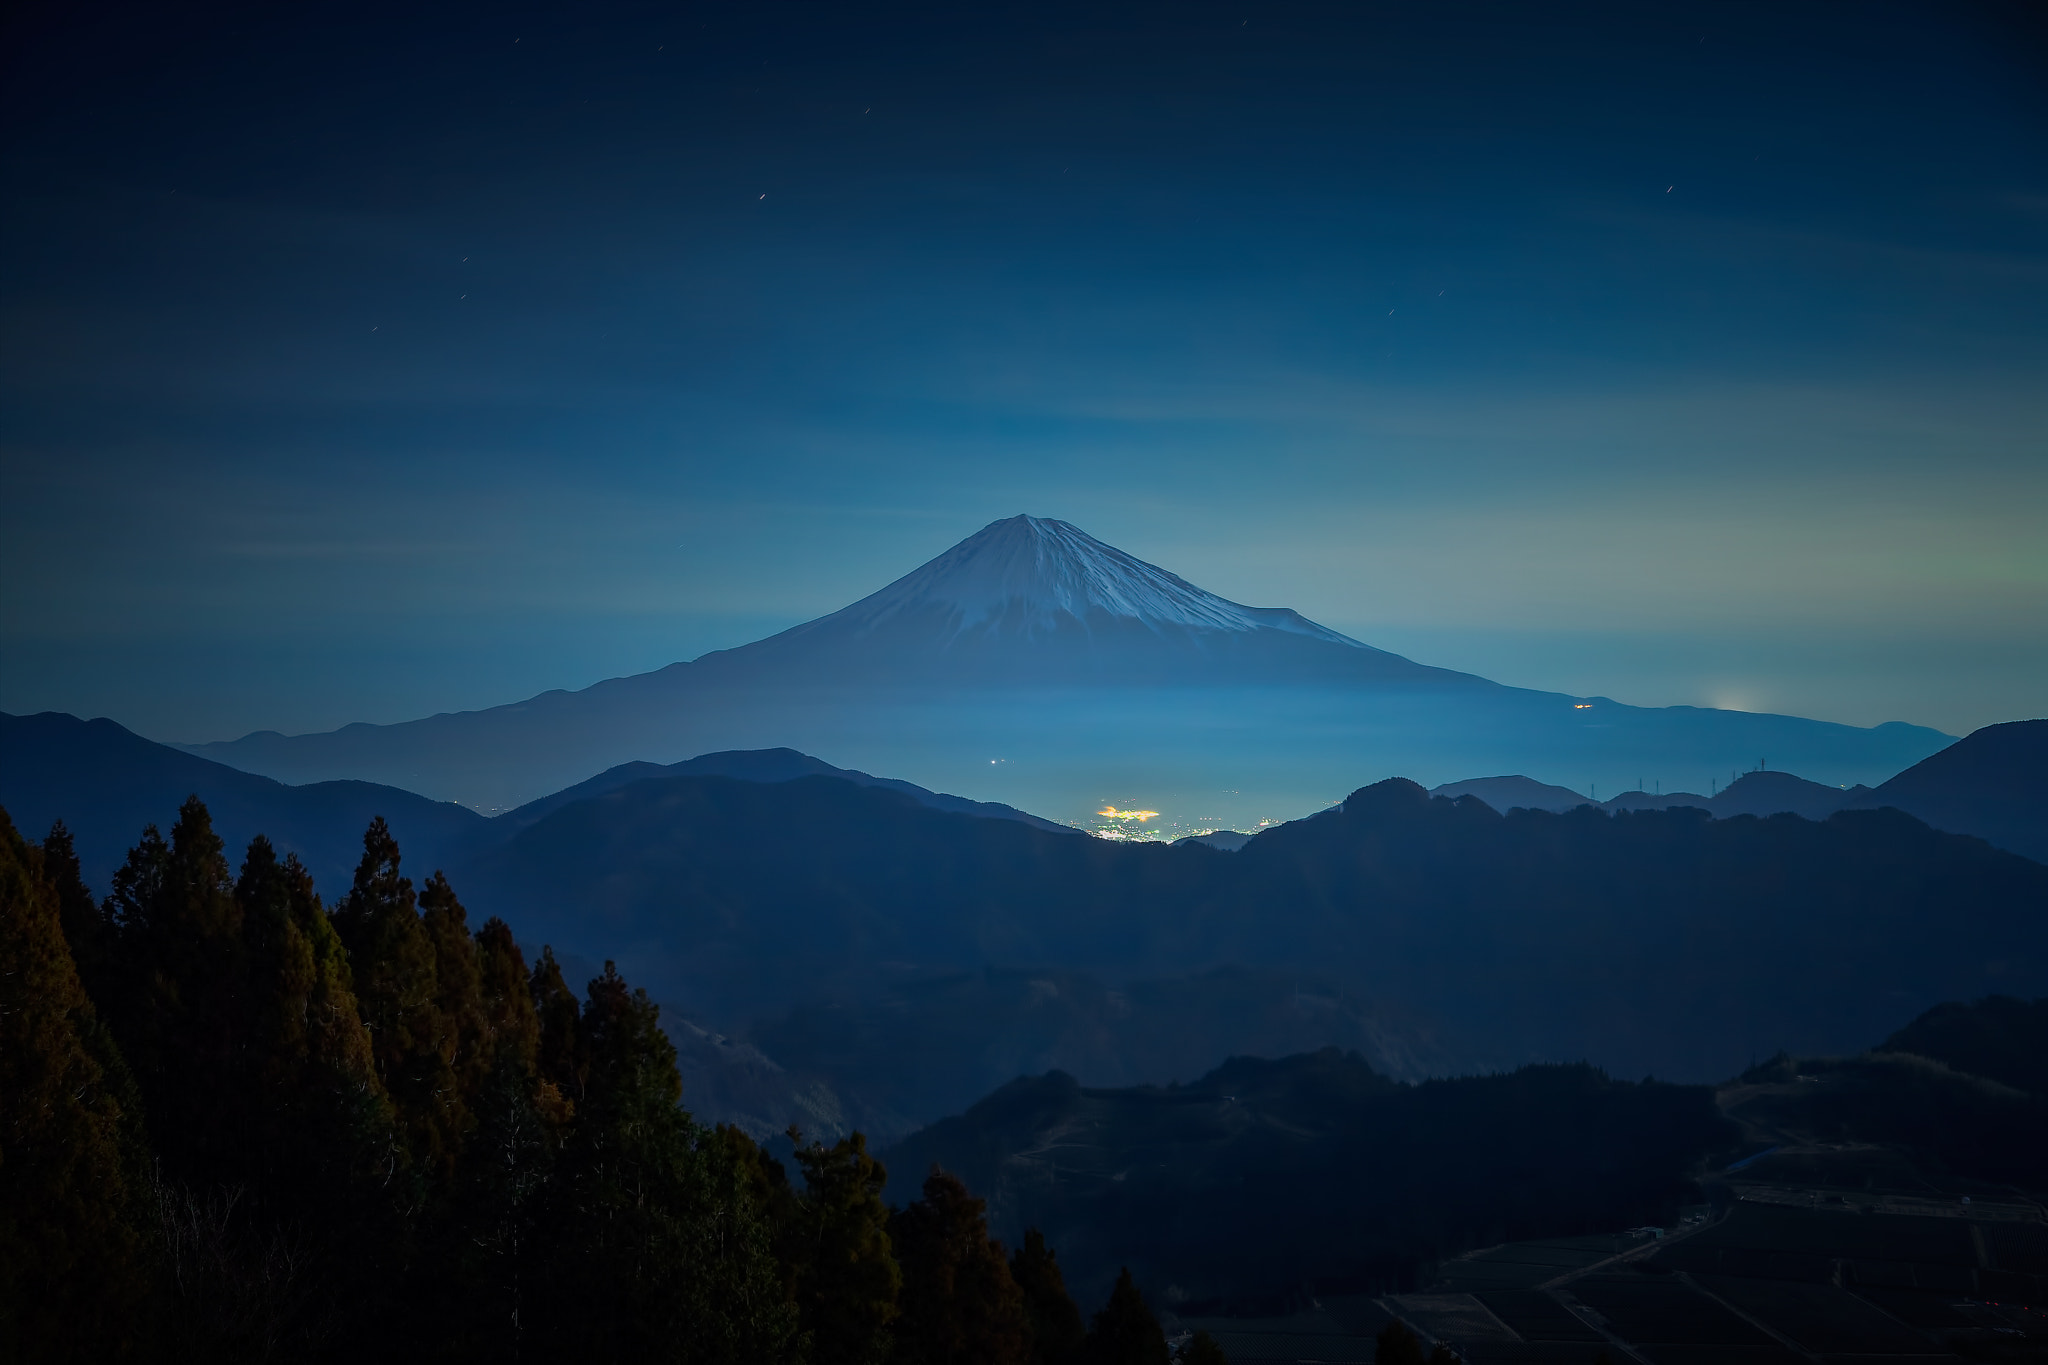 Photograph Mt.Fuji in the night by MIYAMOTO Y on 500px